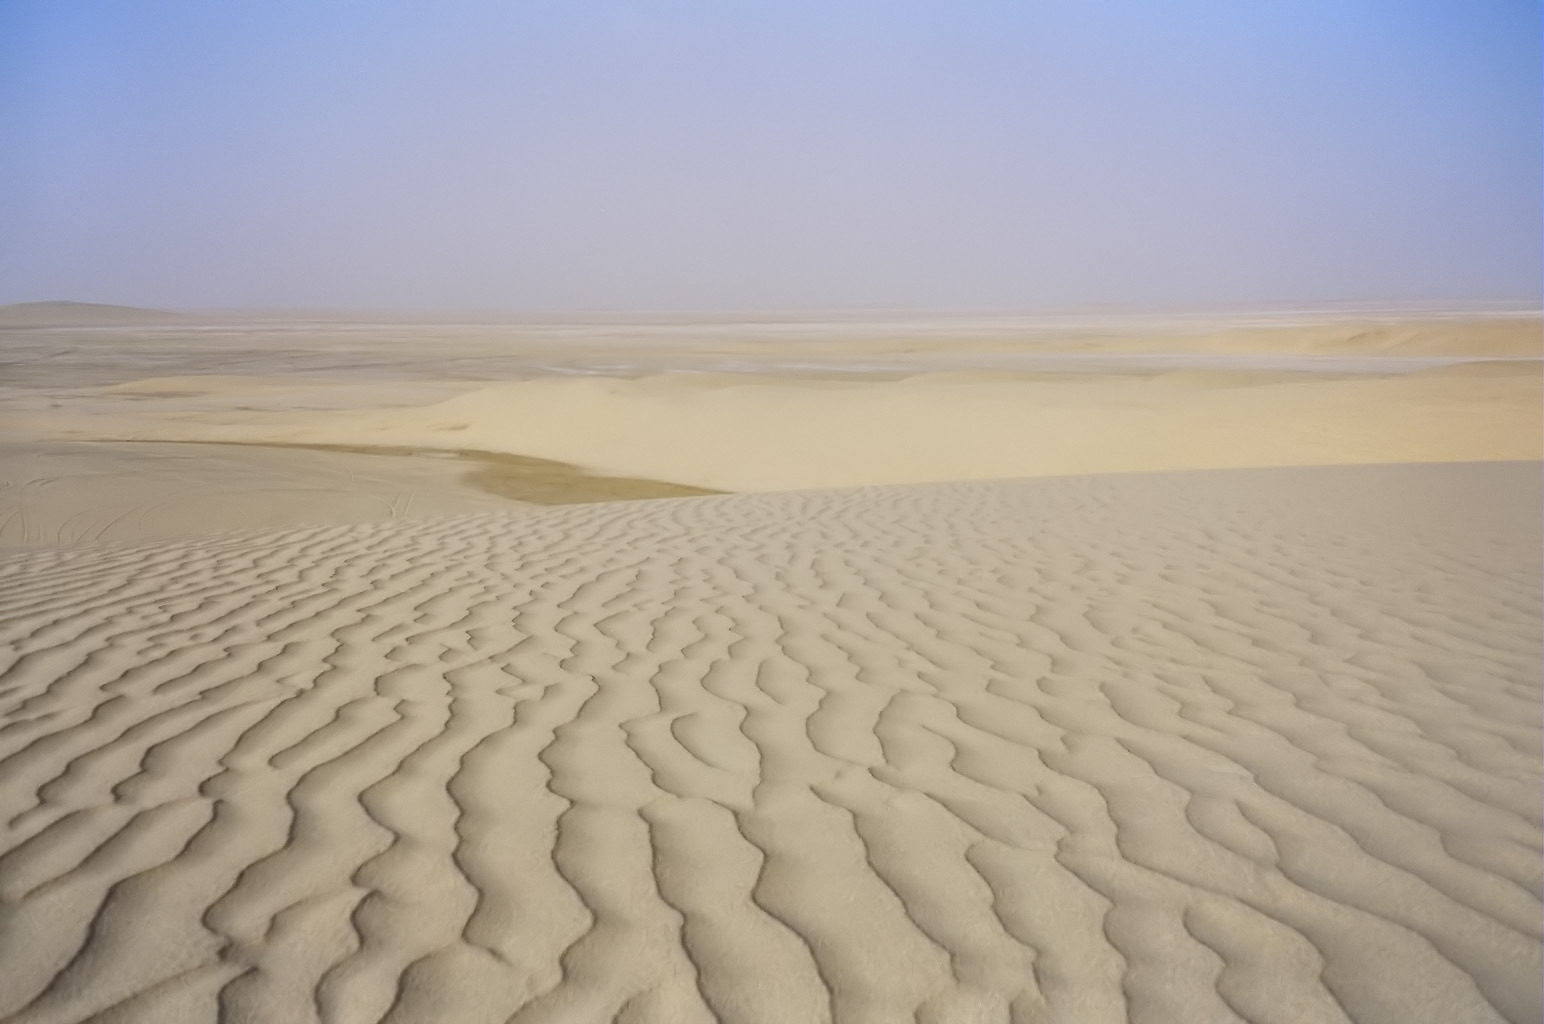 Desert in Qatar I took this photo myself.